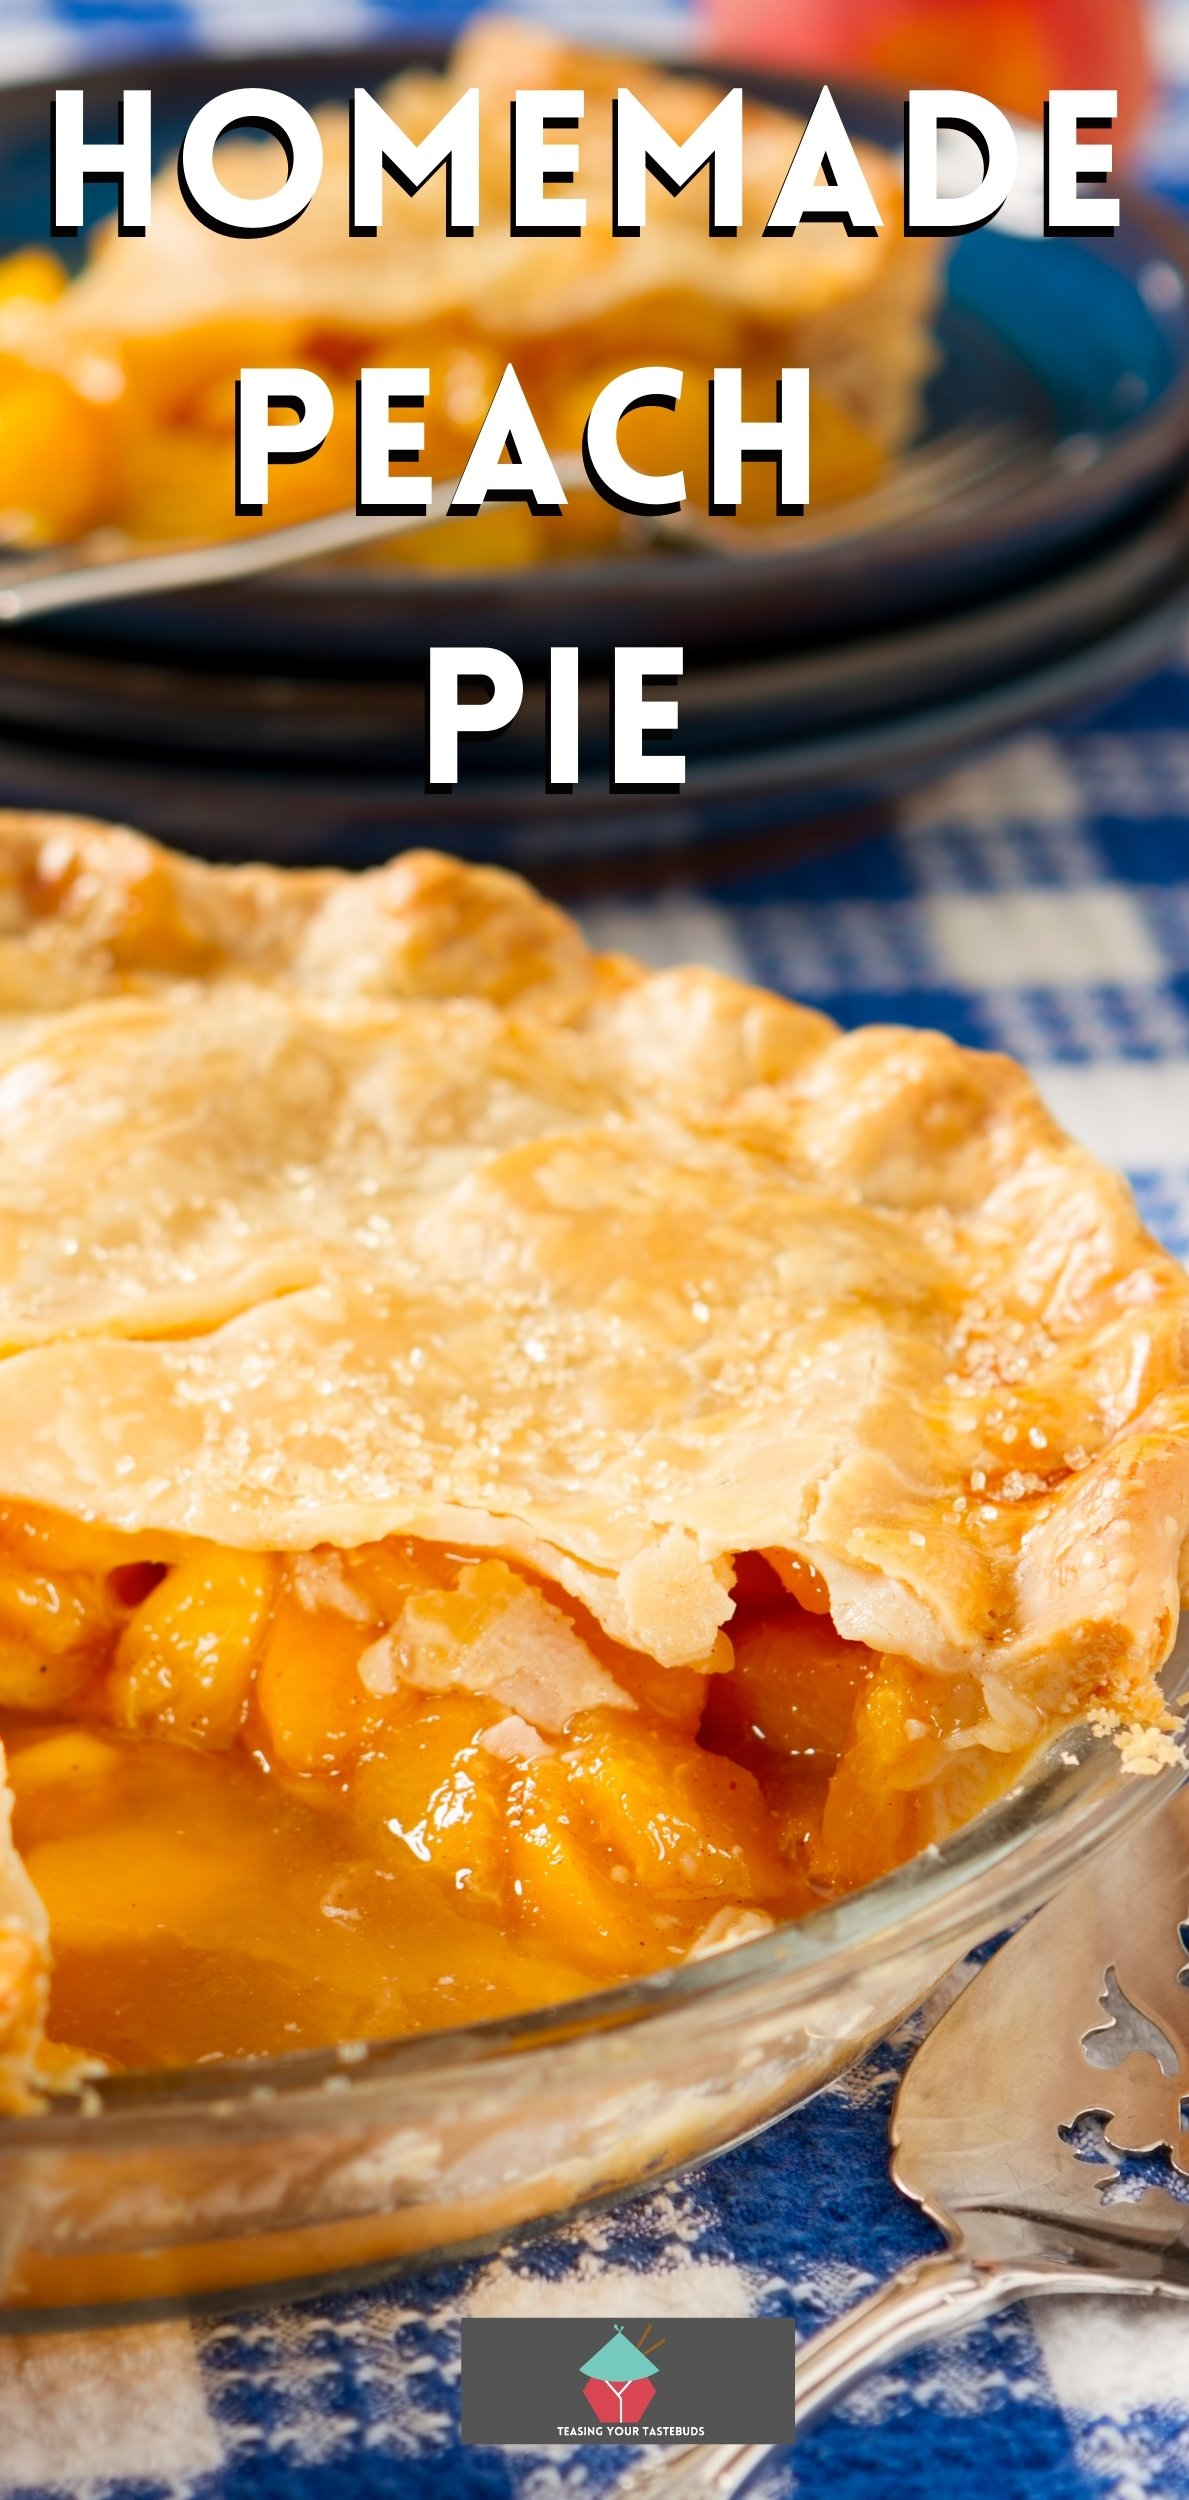 Homemade Peach Pie. A wonderful recipe all made from scratch with a delicious crispy flaky pastry. Serve warm with some whipped cream or ice cream! Yummy!